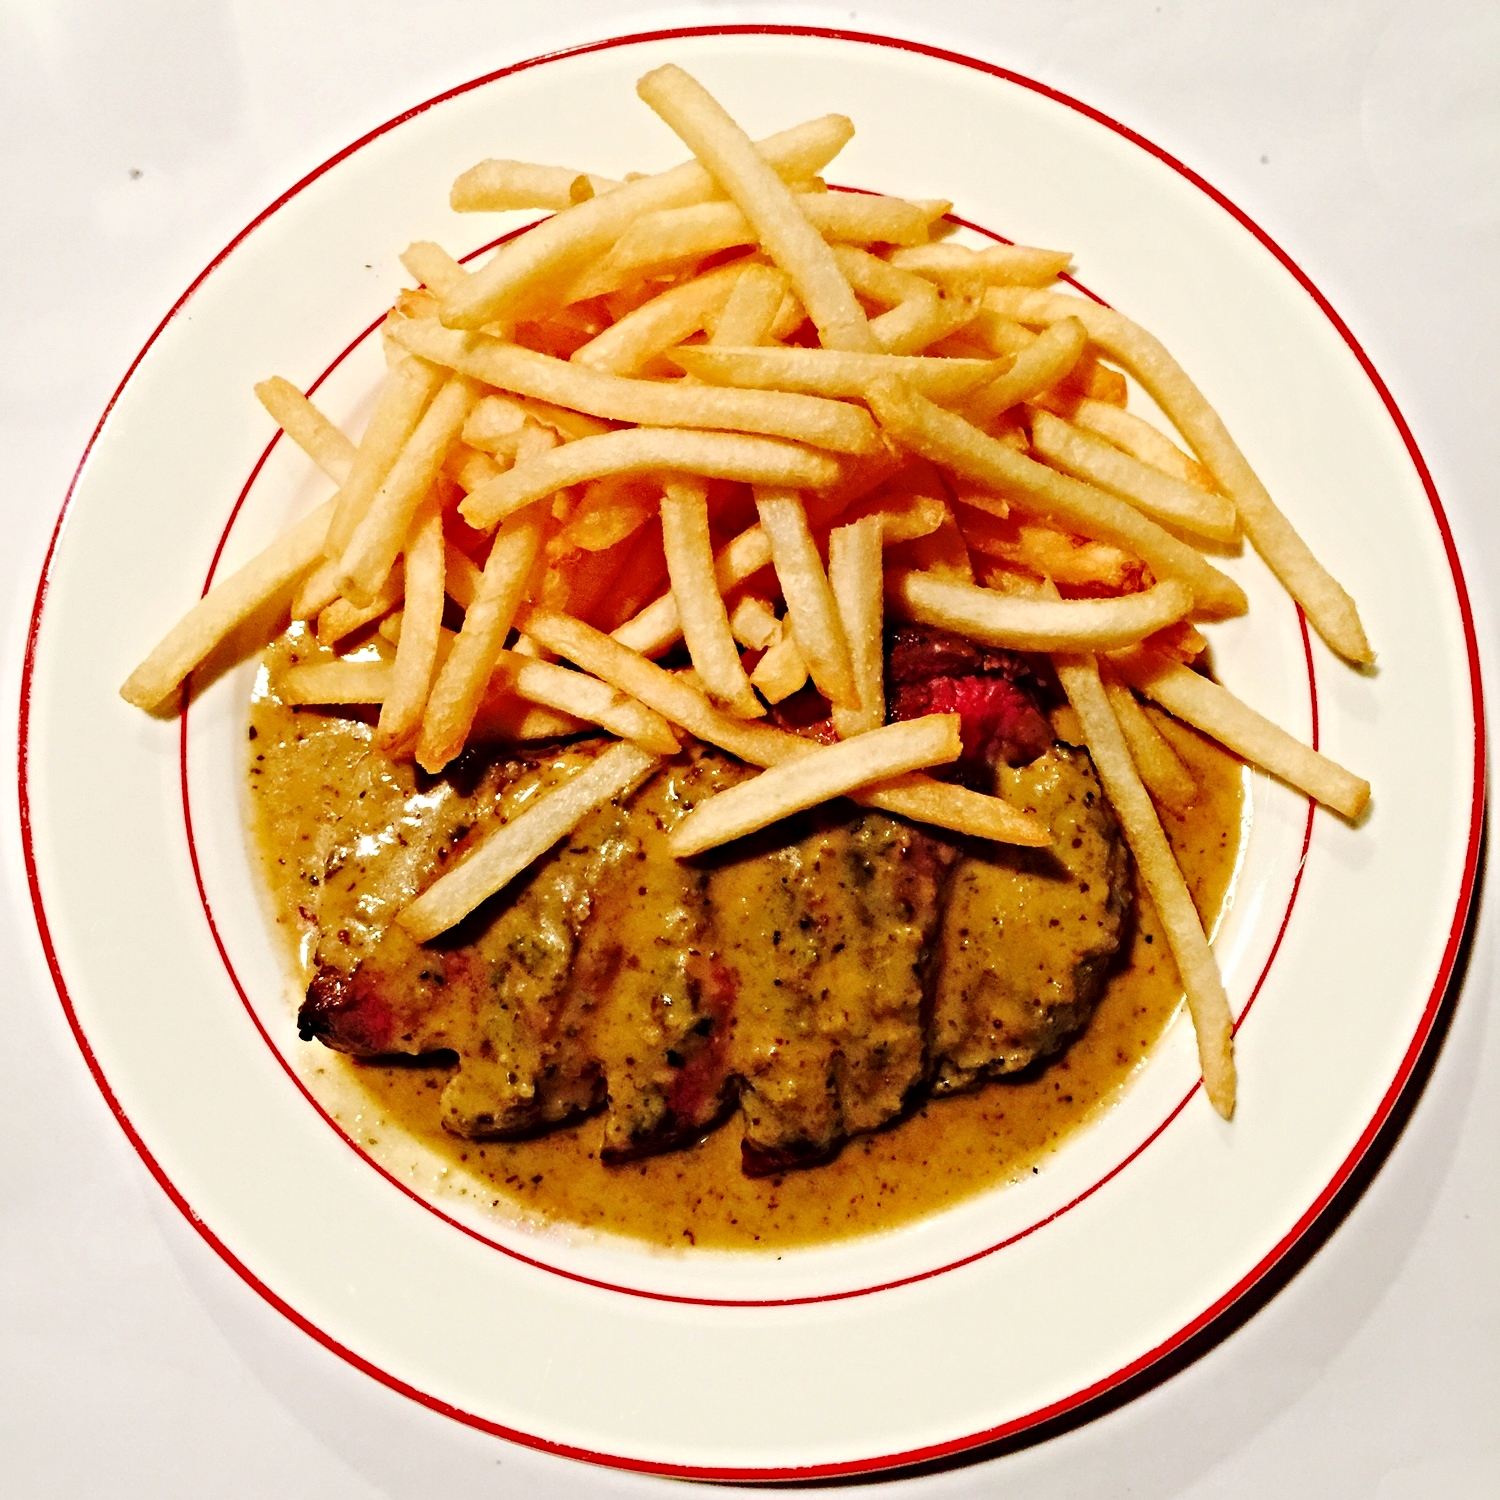 The 'classic' Entrecôte Steak & Fries - 200 grams of  Entrecôte Steak with its 'legendary' (butter-based) sauce and Unlimited Golden French Fries